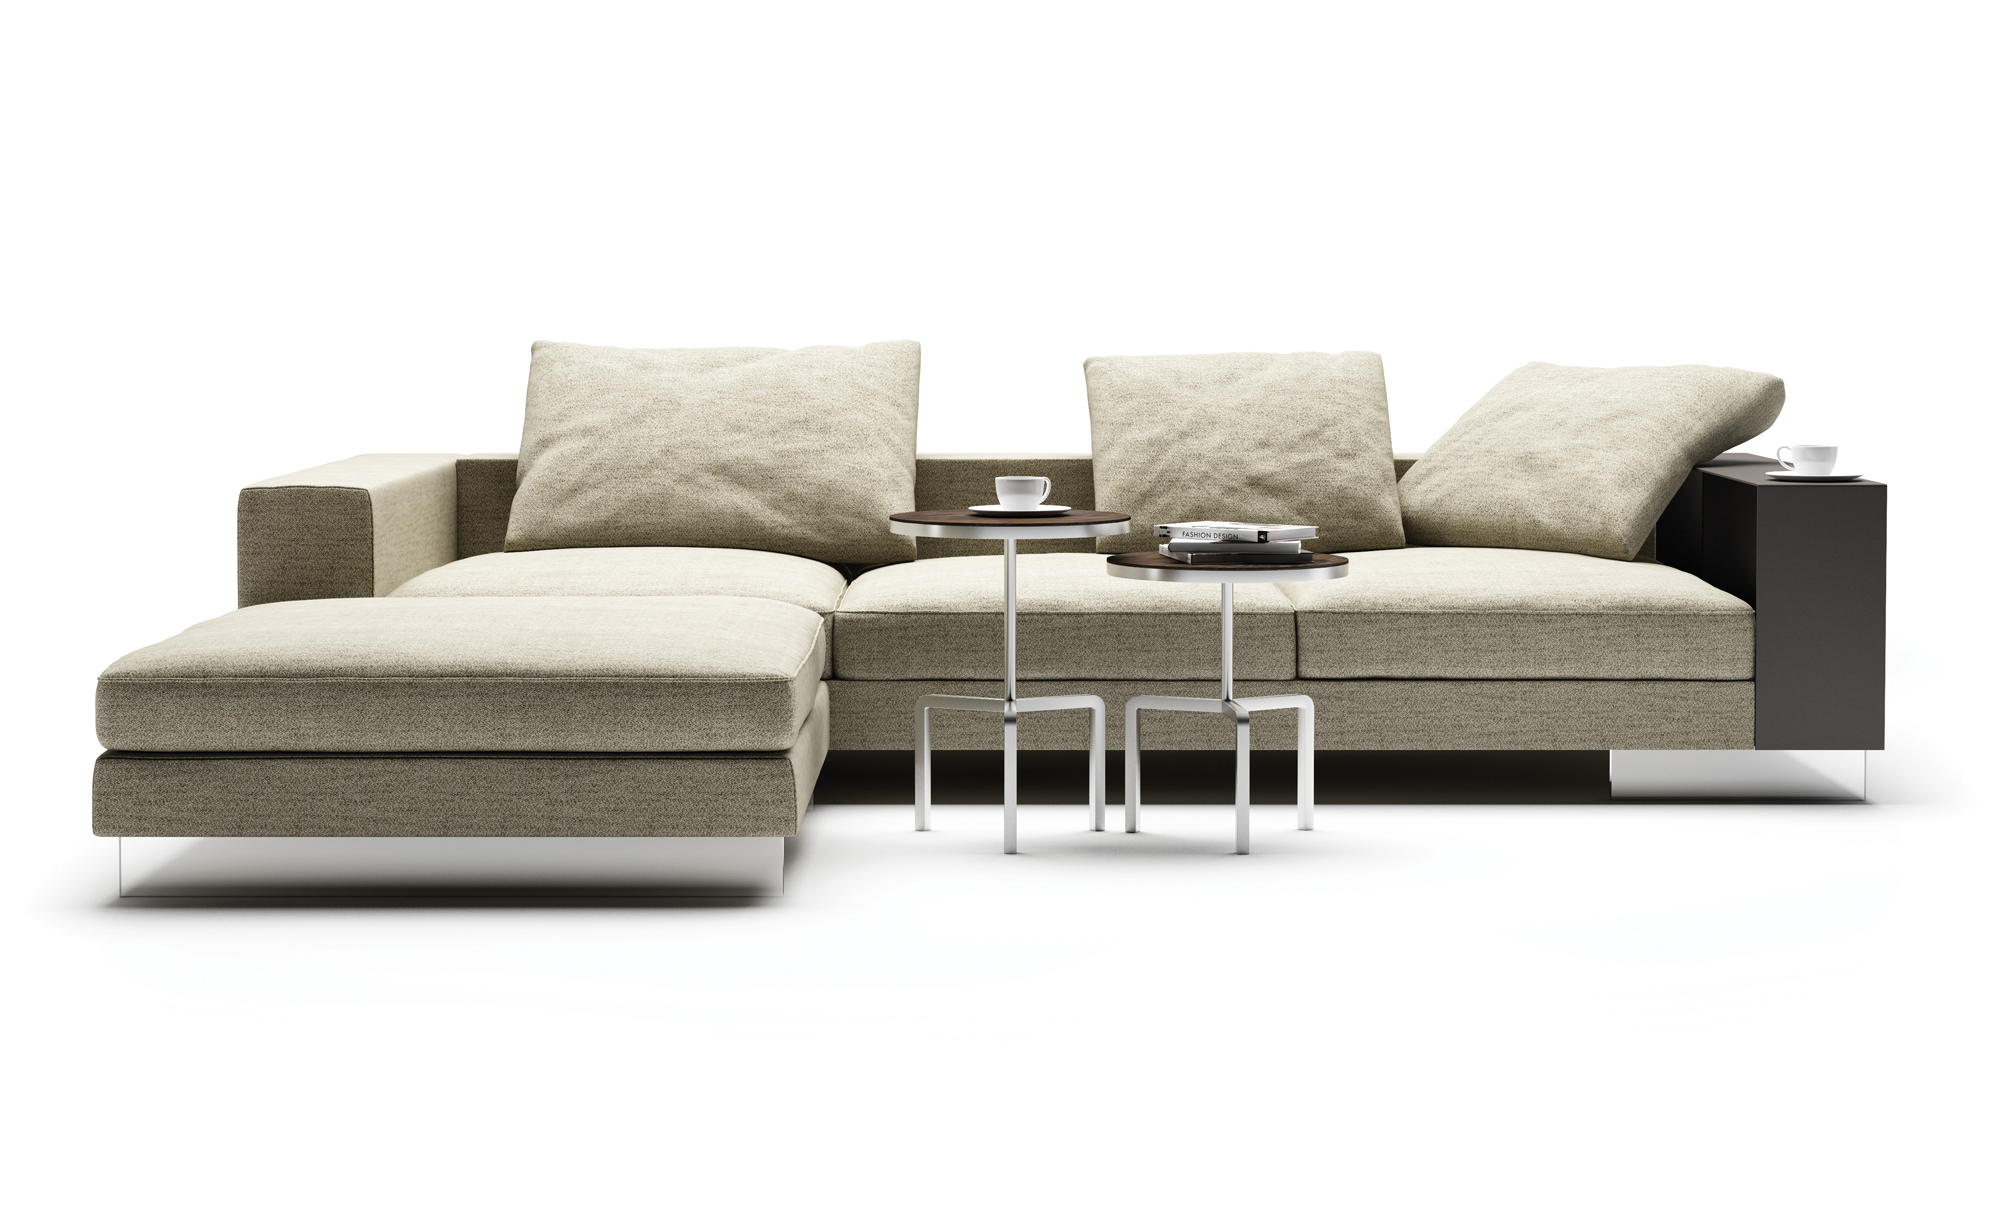 Modular Furniture Lightpiece Modular Sofa By Flexform Fanuli Furniture